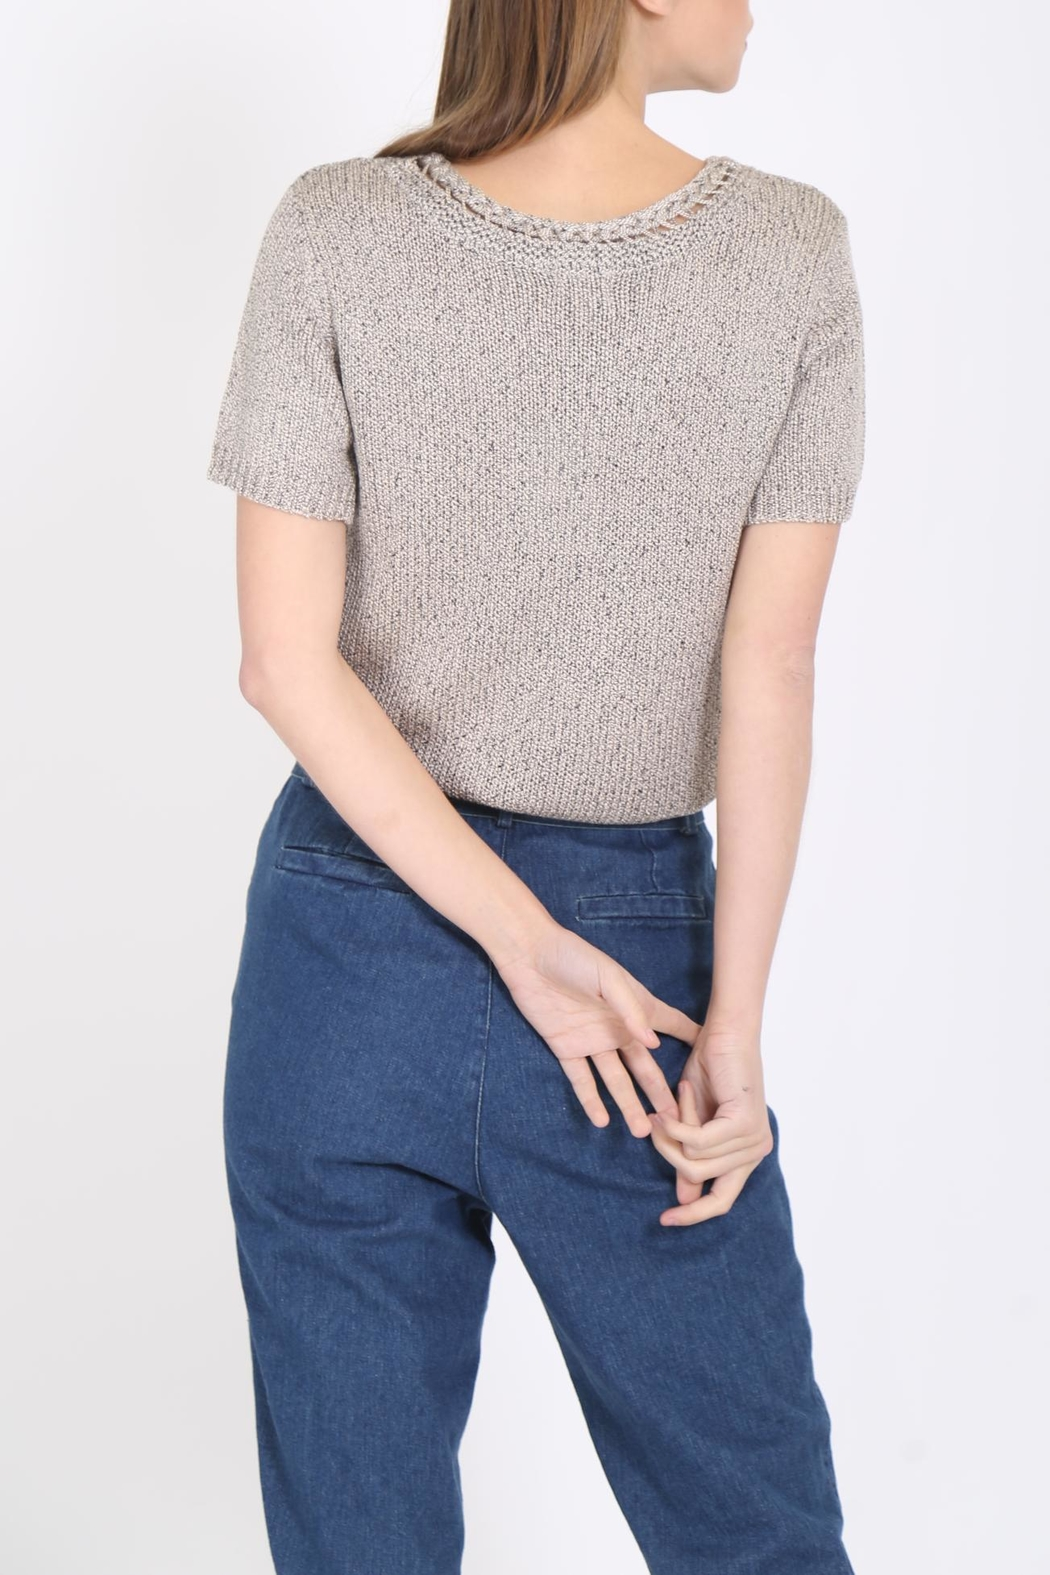 Movint Braid Detailed Sweater - Side Cropped Image